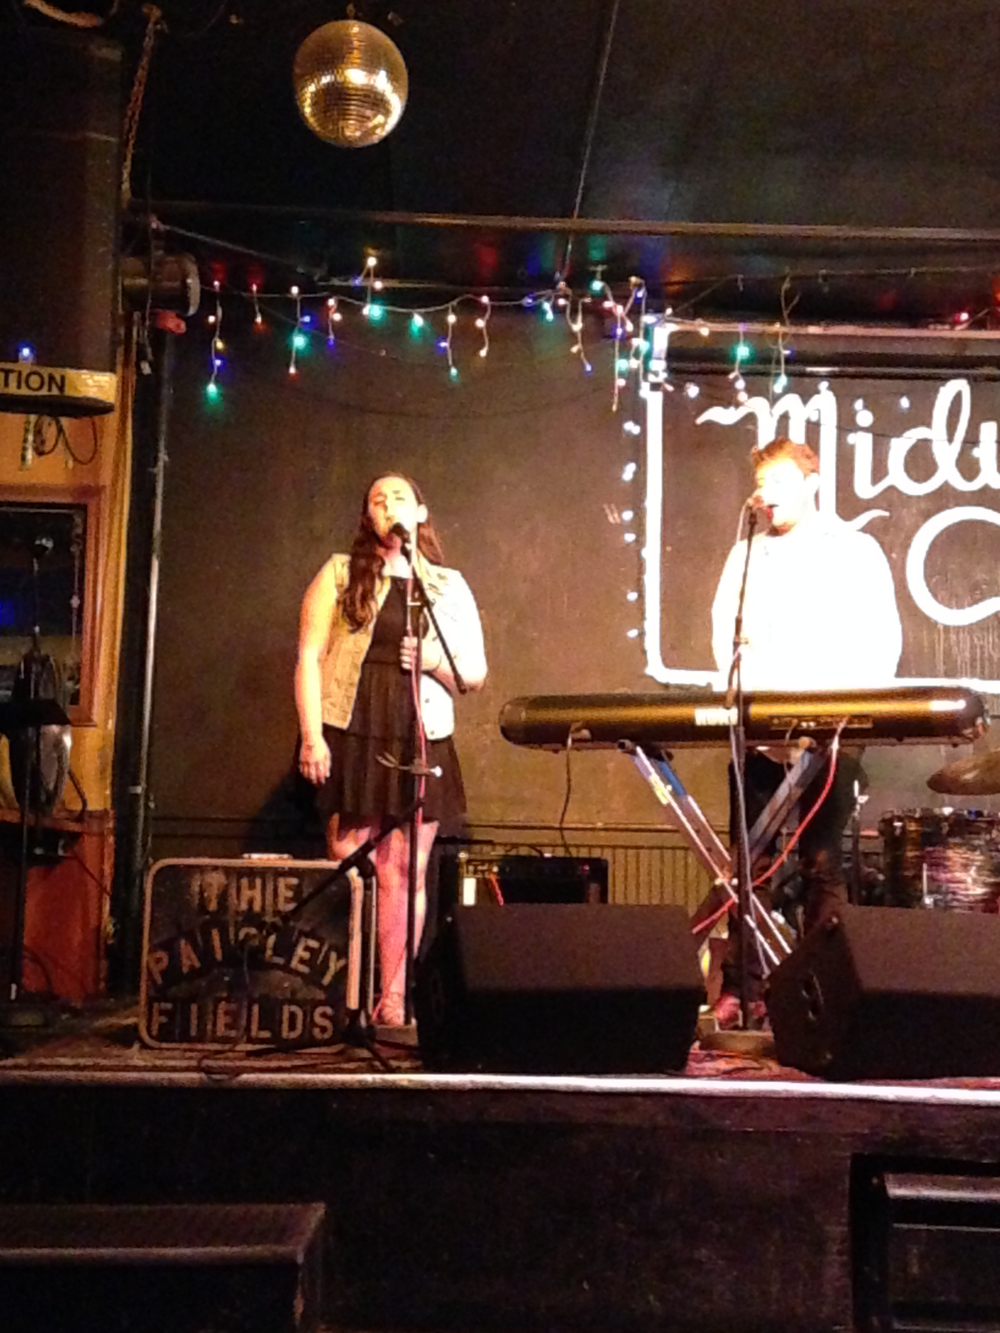 The Paisley Fields on stage at Midway Cafe in Boston. We are doing this tour as a duo. Photo by Sam Garkow.